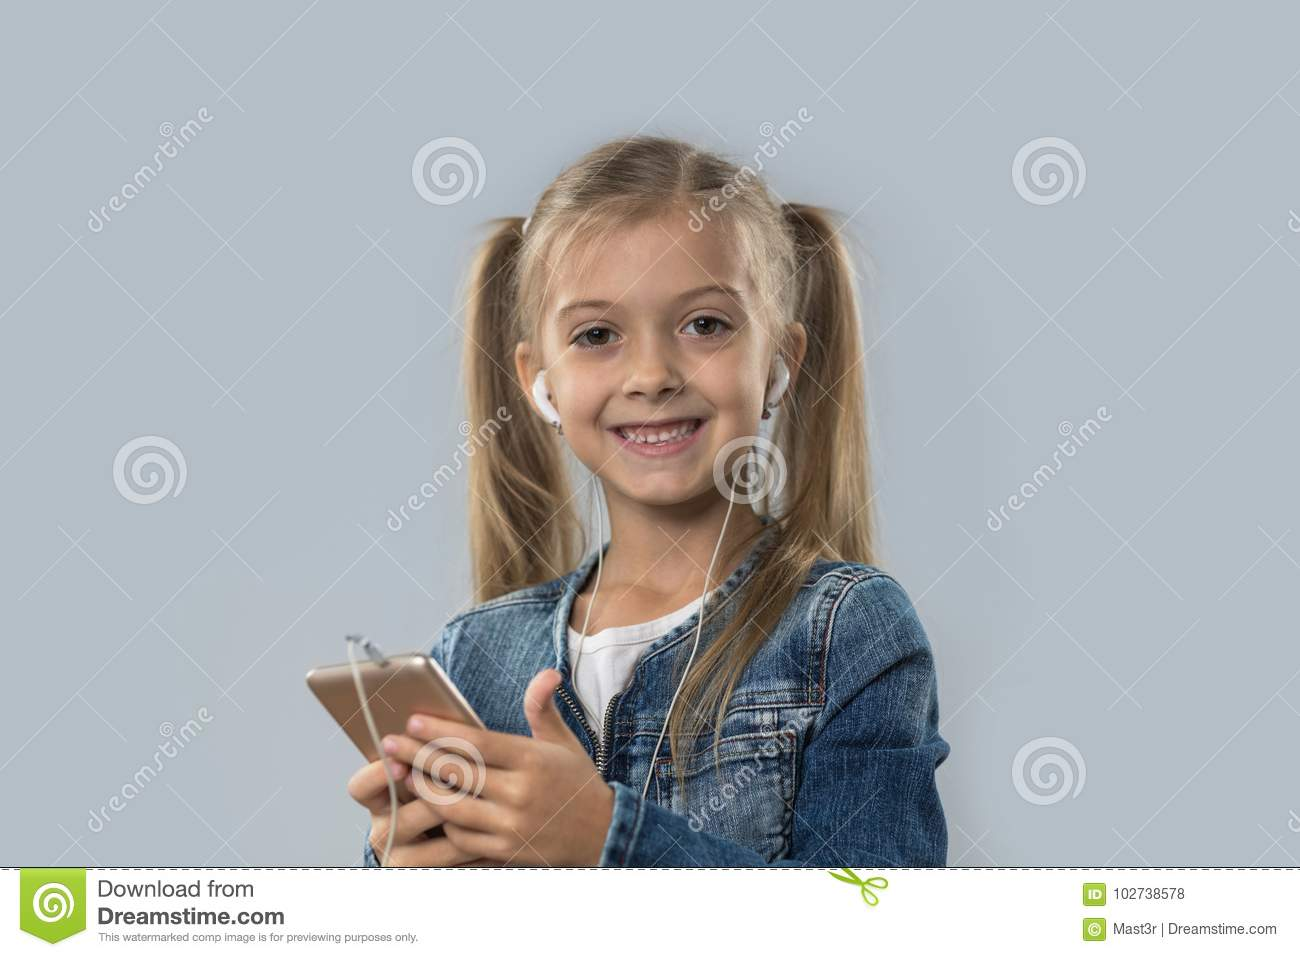 Beautiful Little Girl Using Cell Smart Phone Listen Music Wear Earphones Happy Smiling Isolated